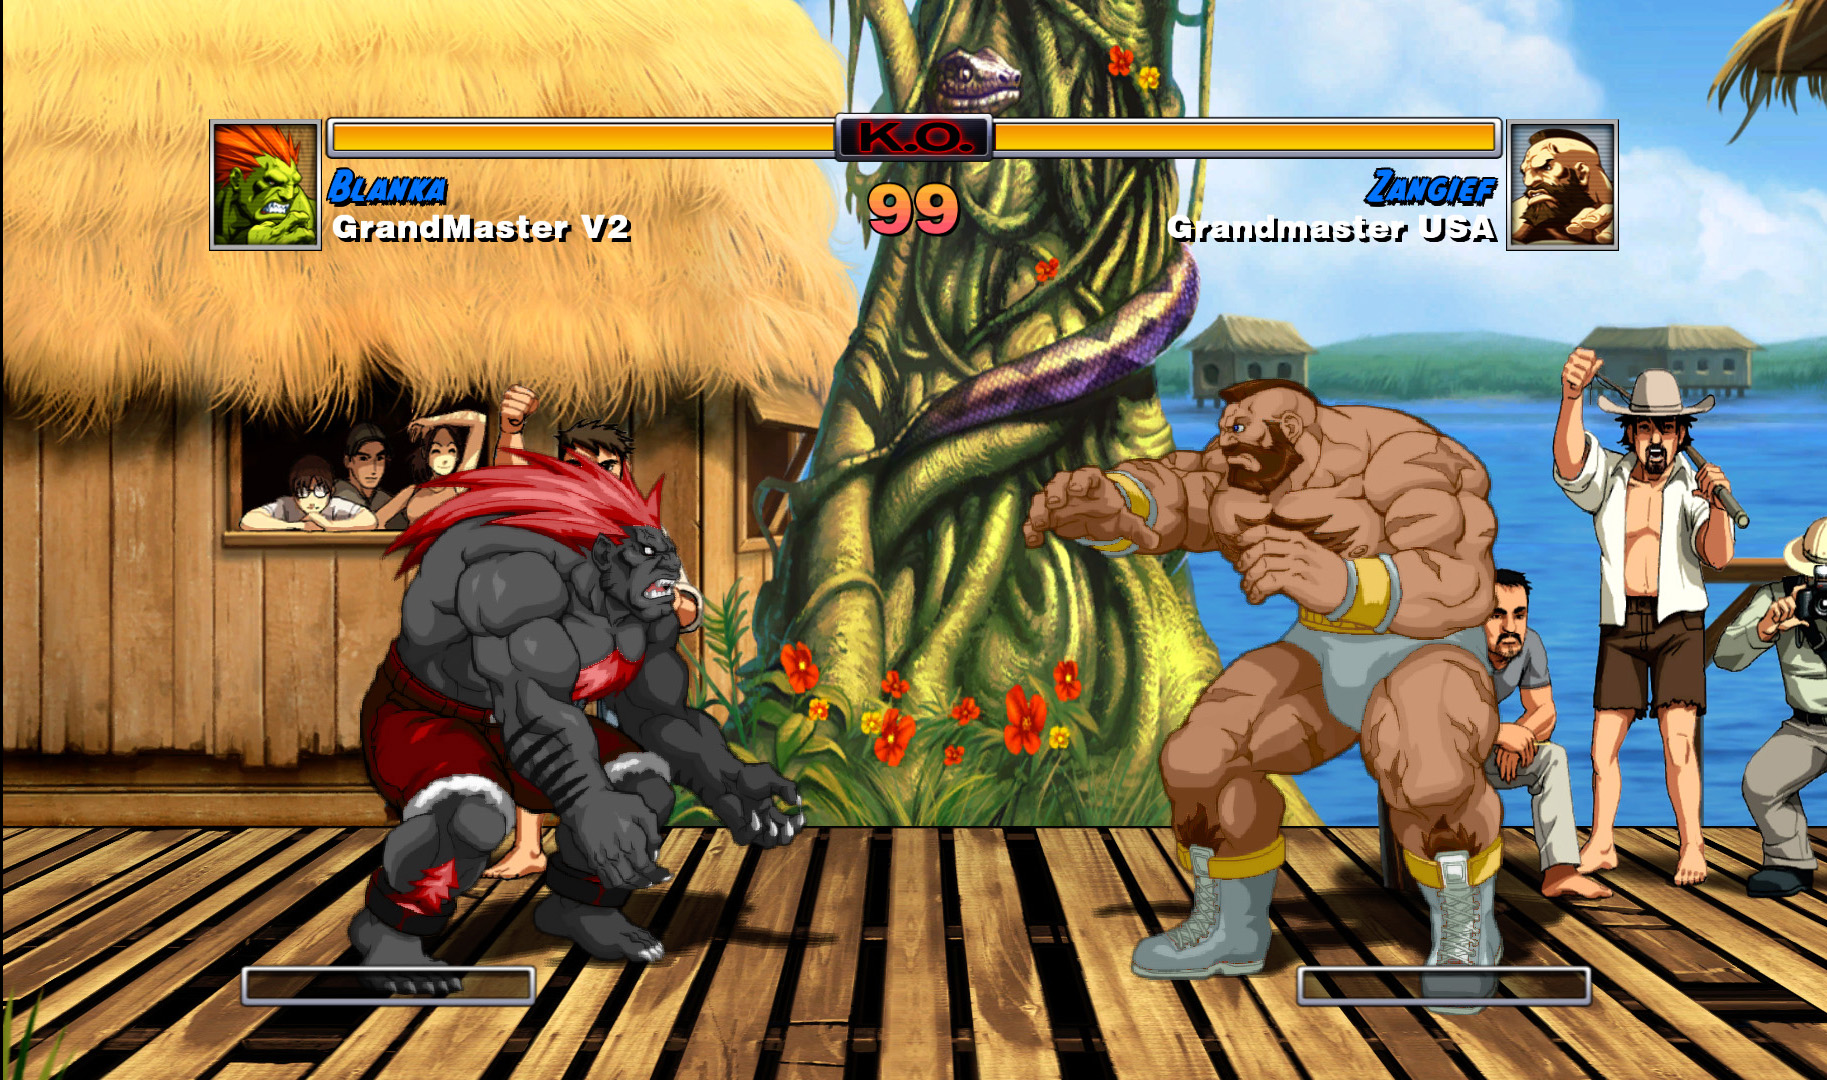 une photo d'écran de Super Street Fighter 2 Turbo HD Remix sur X-Box Live